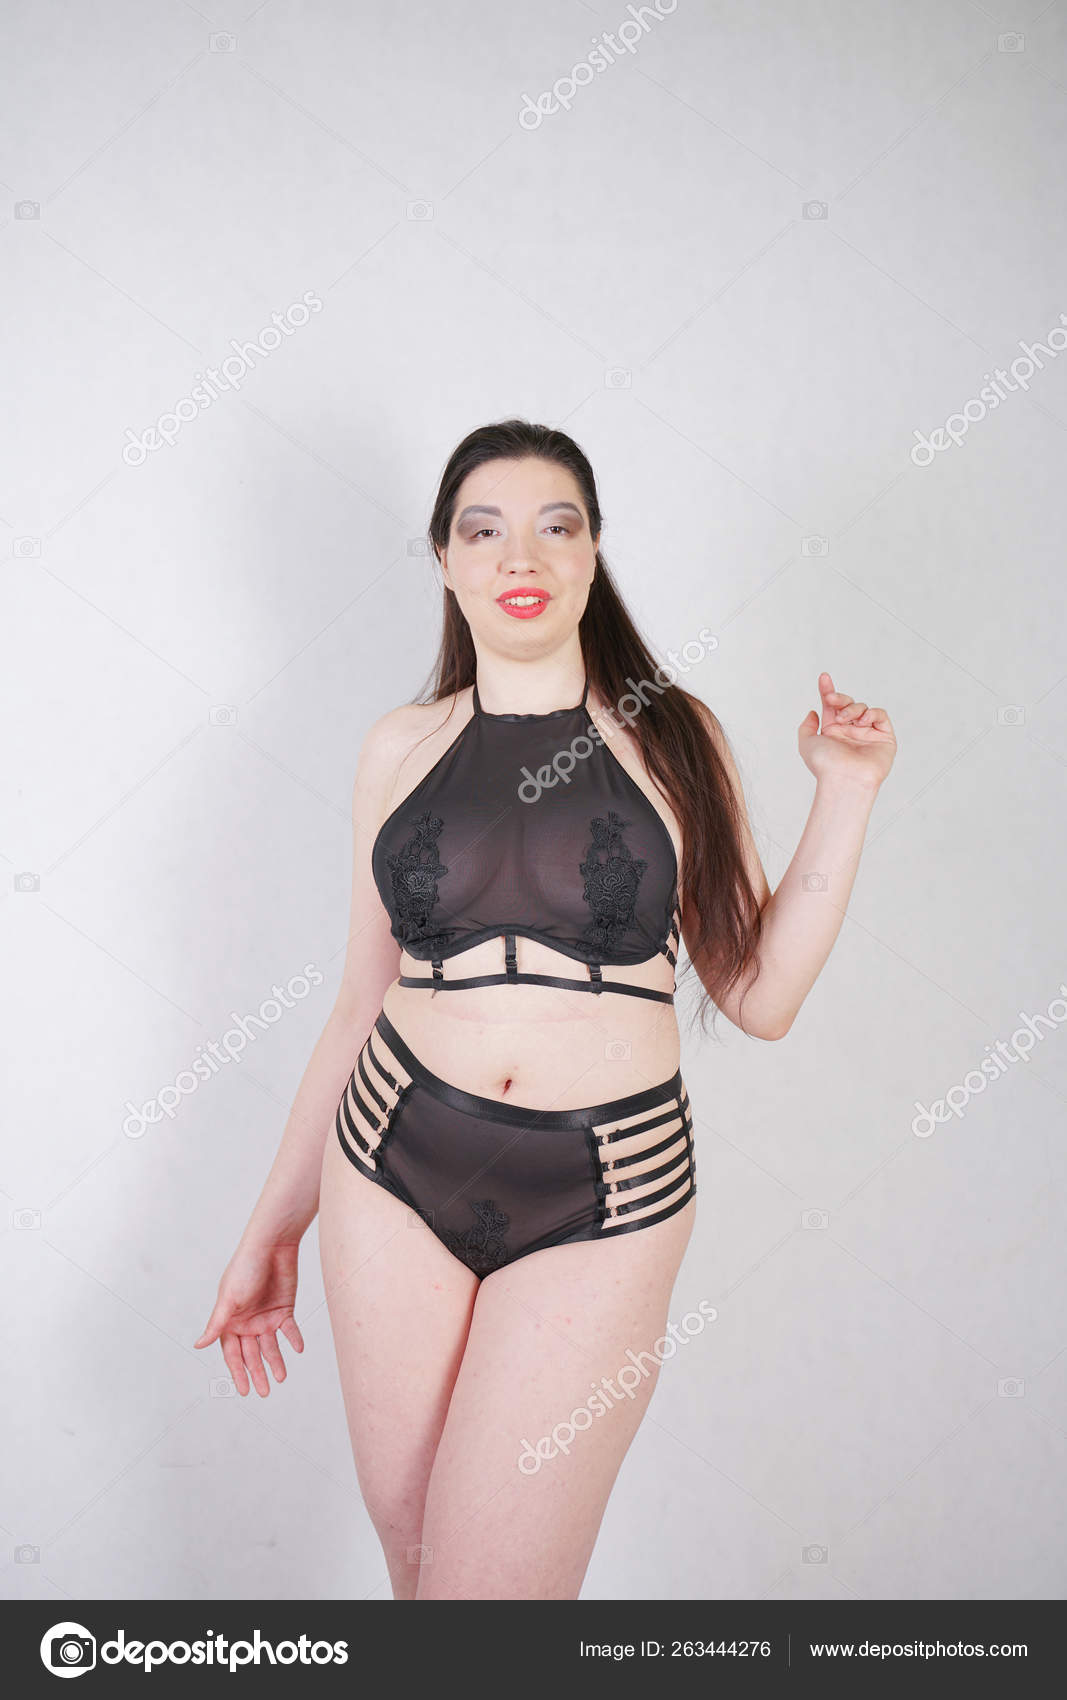 Sexy chubby girls lingerie